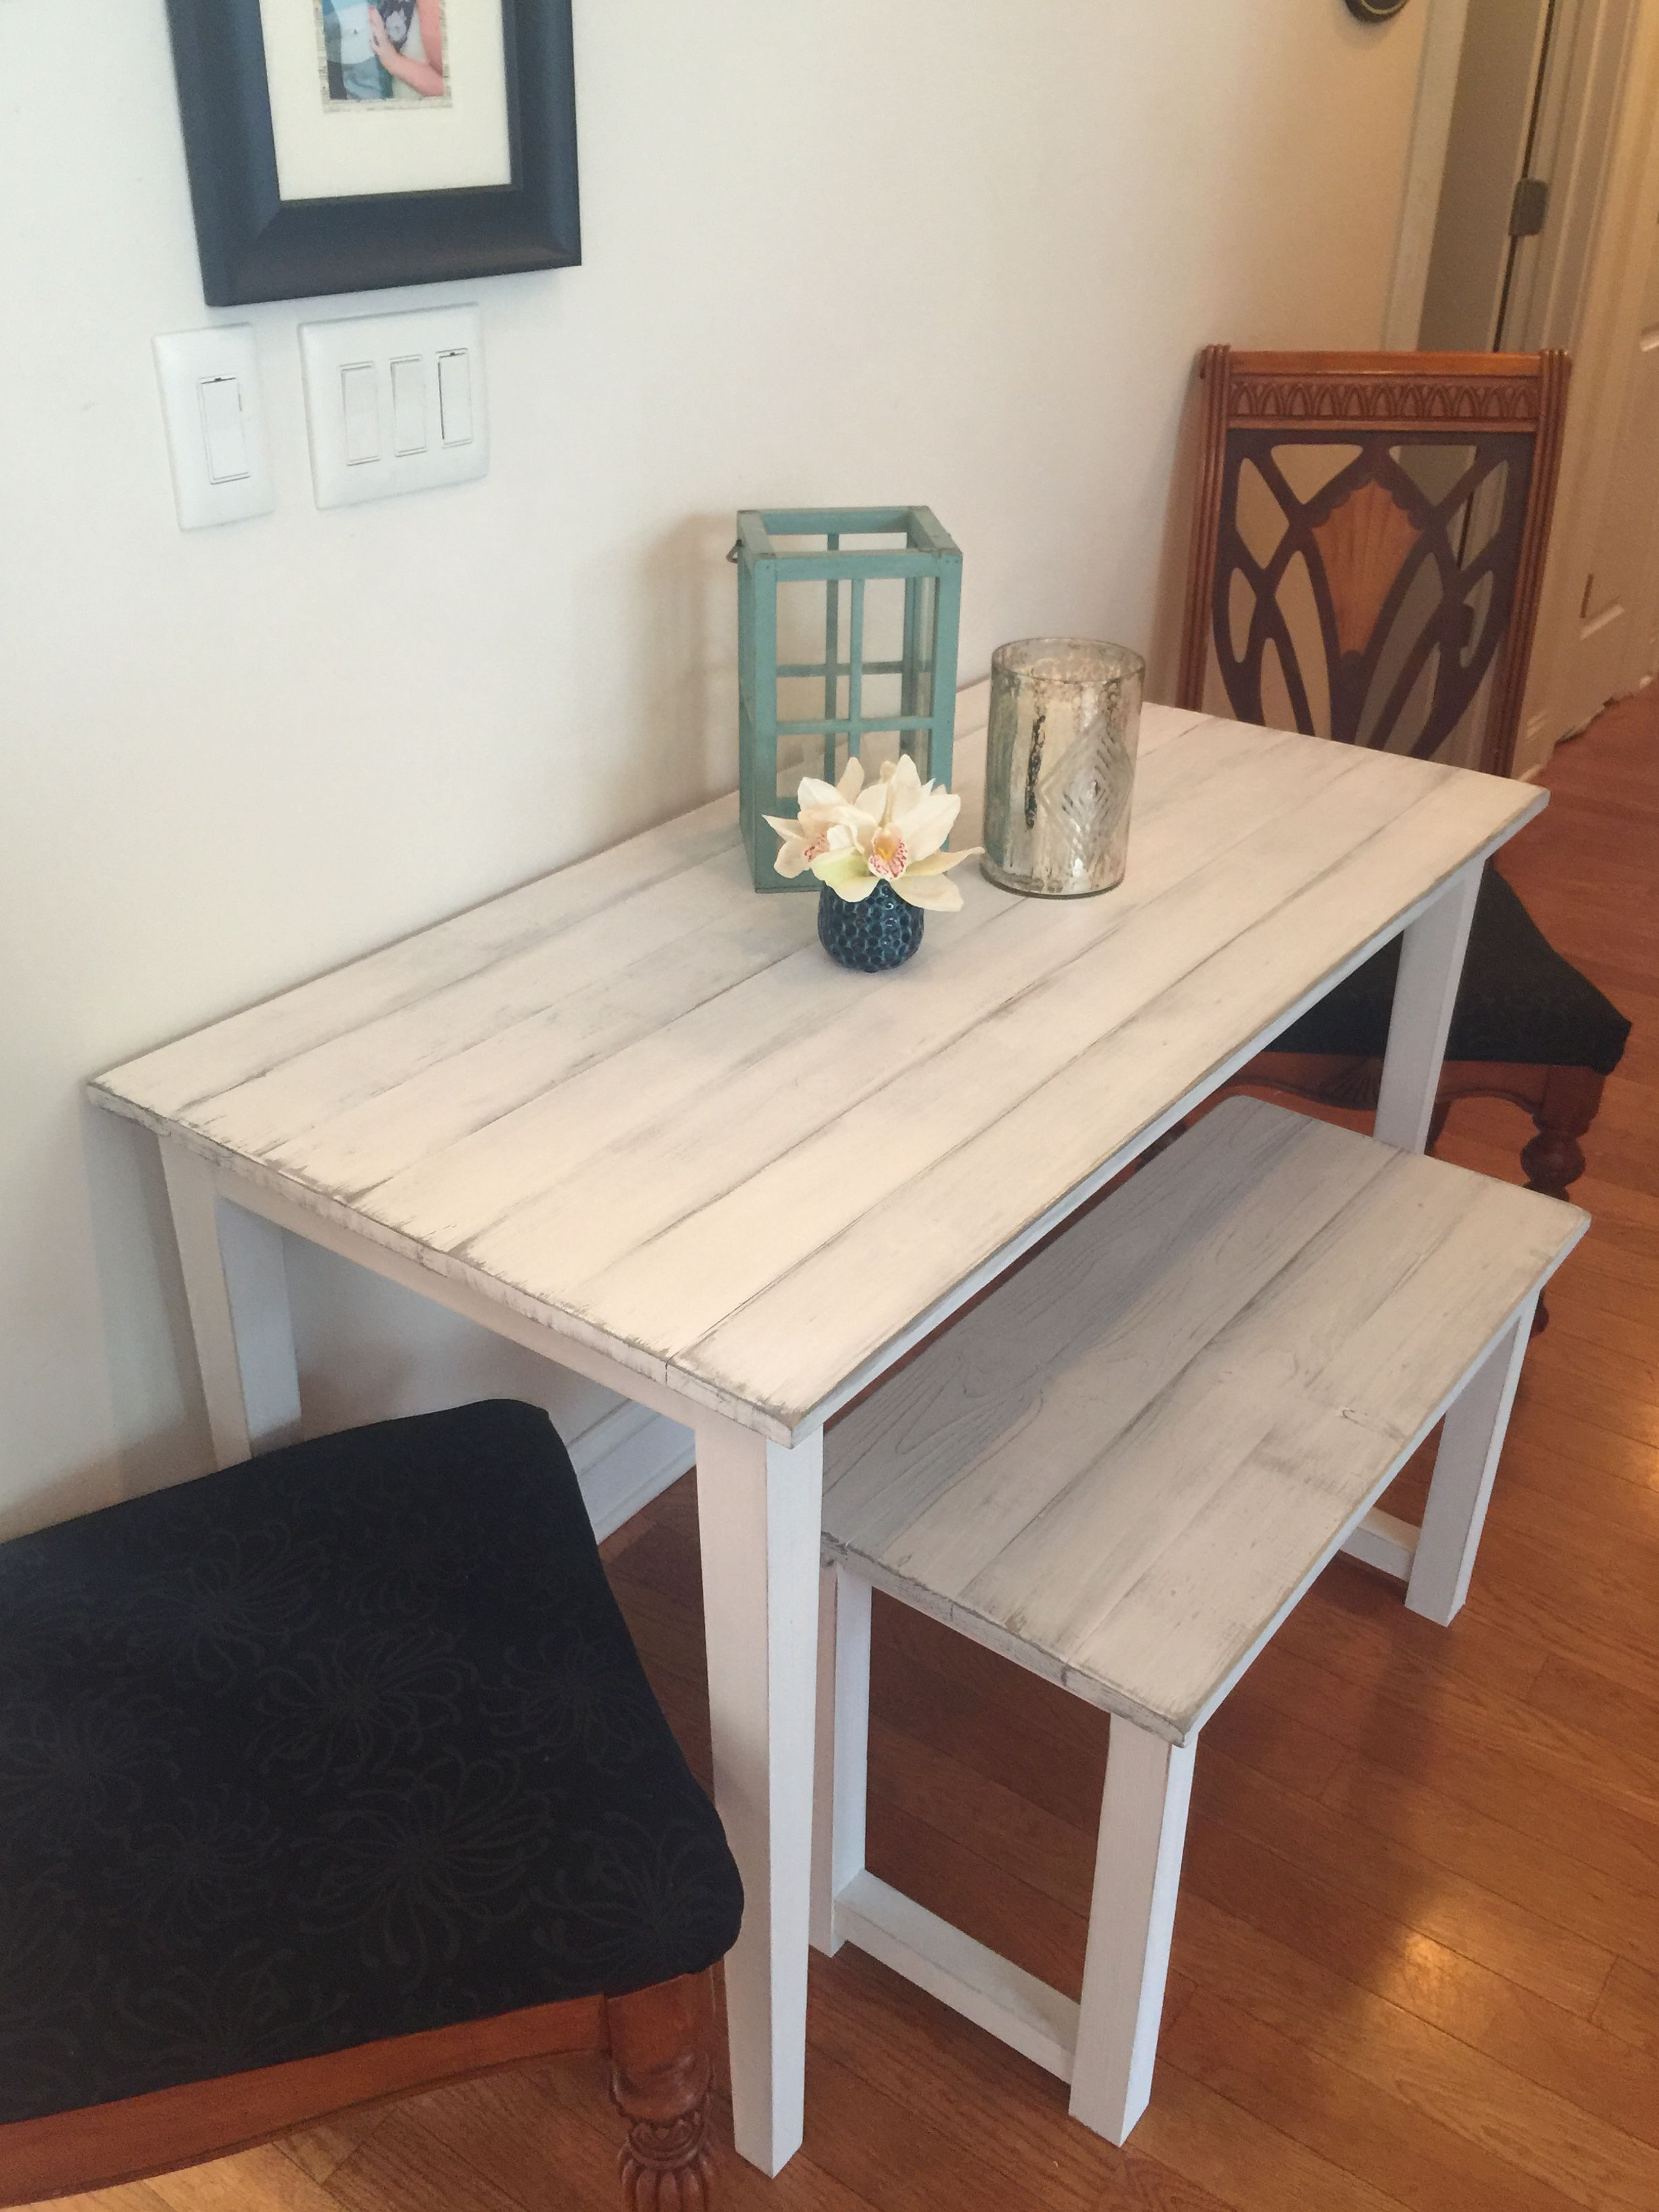 Small Farmhouse Table Part - 42: Small Farmhouse Table For Small Room. Bench And Distressed White Washed  Wood. Decorating A